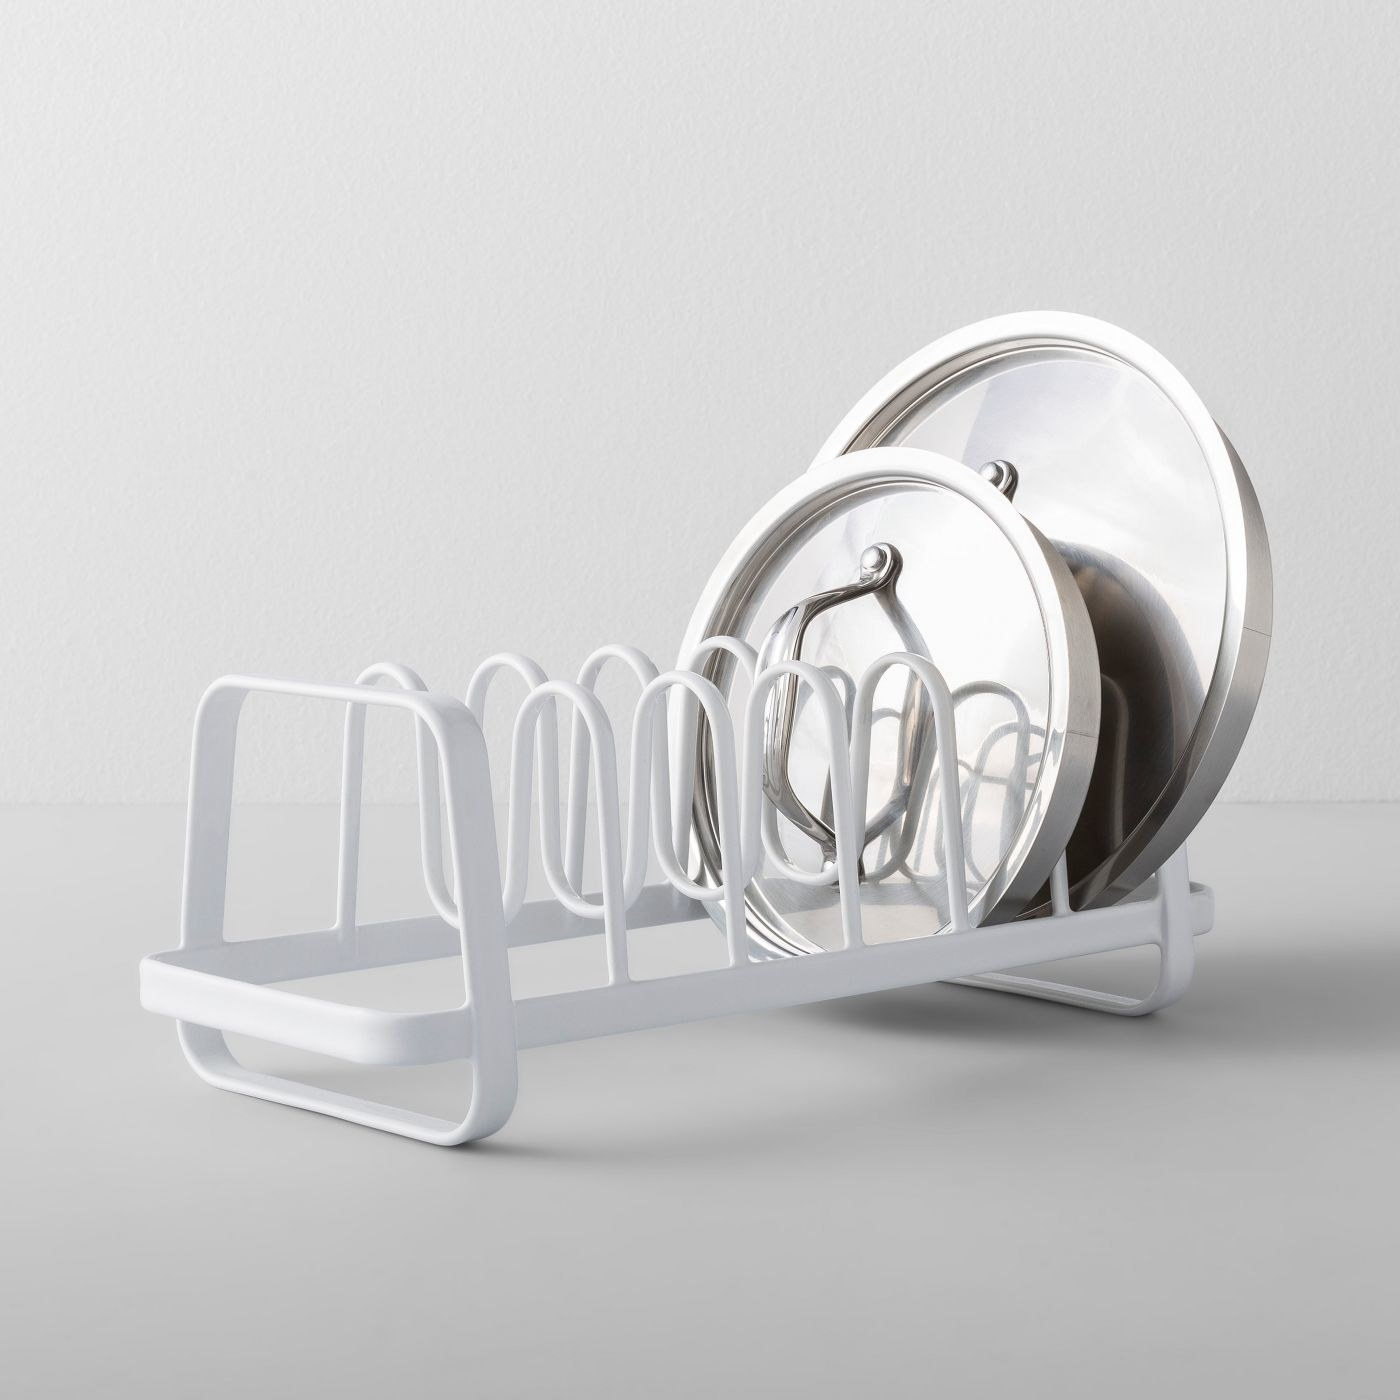 The lid holder with six compartments and two pot lids in it